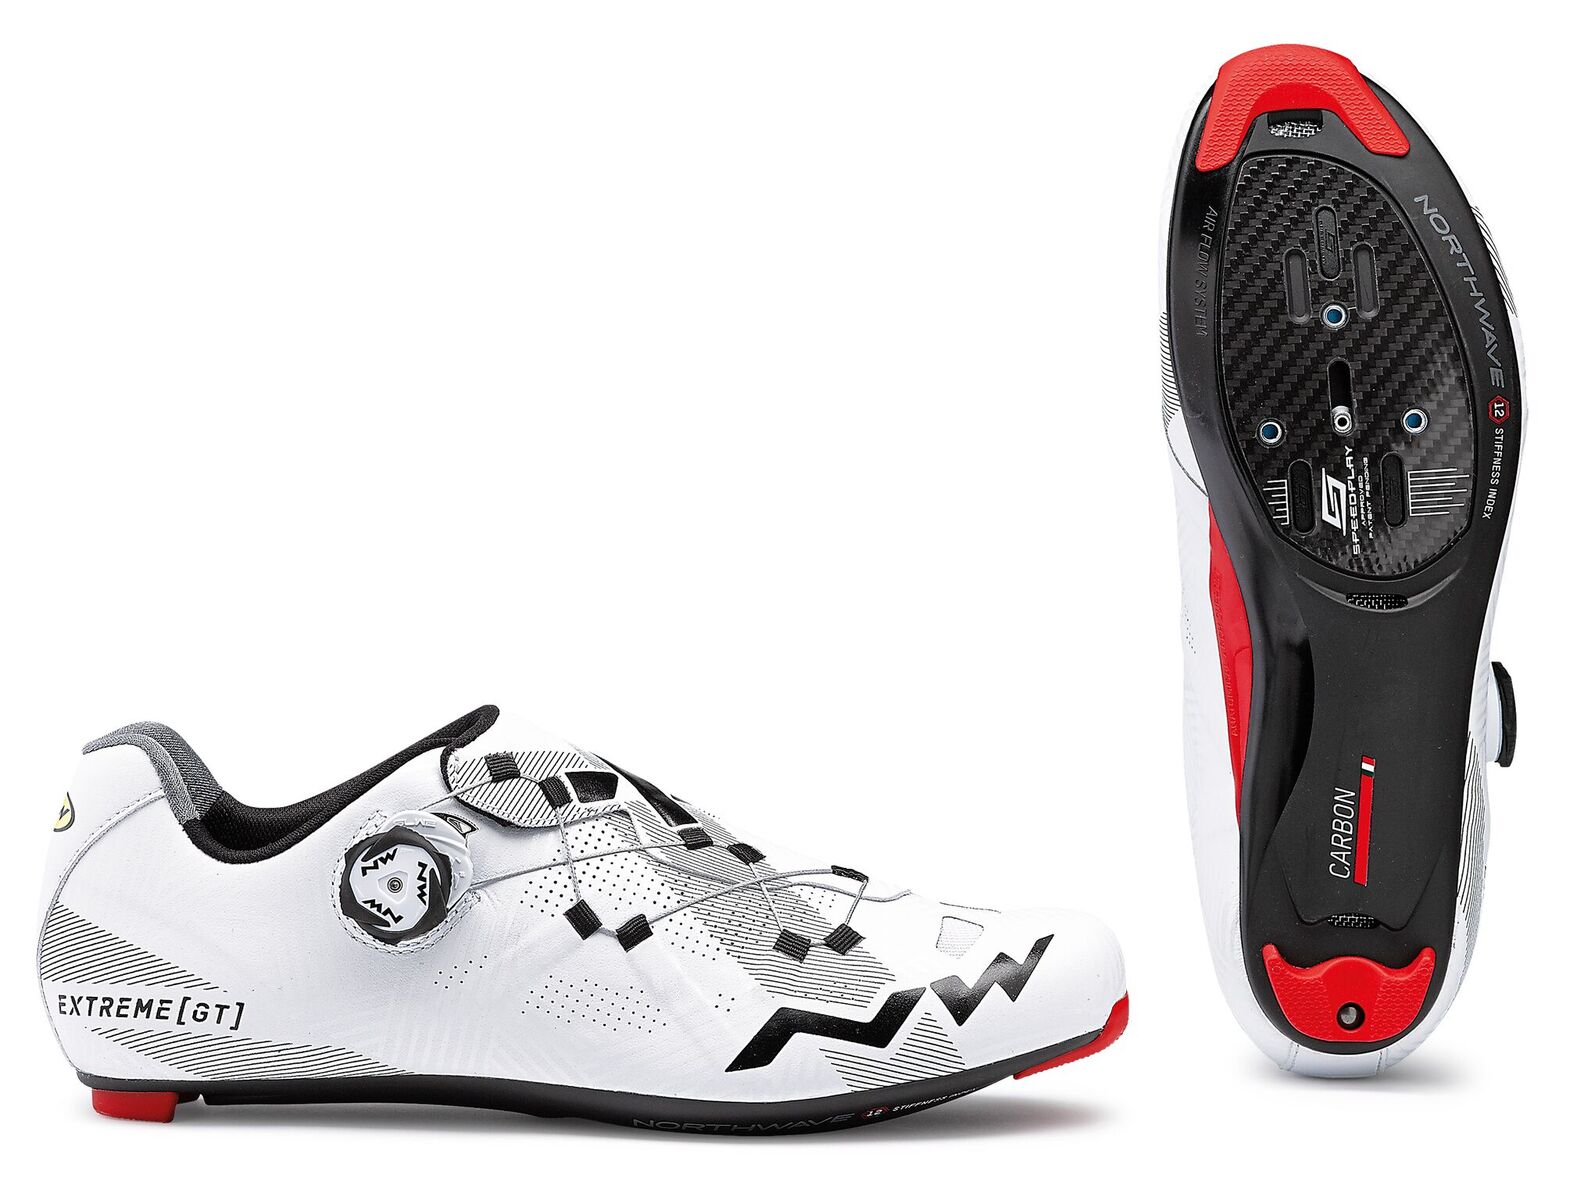 Scarpe Ciclismo Strada Donna Northwave Extreme GT Woman WHITE